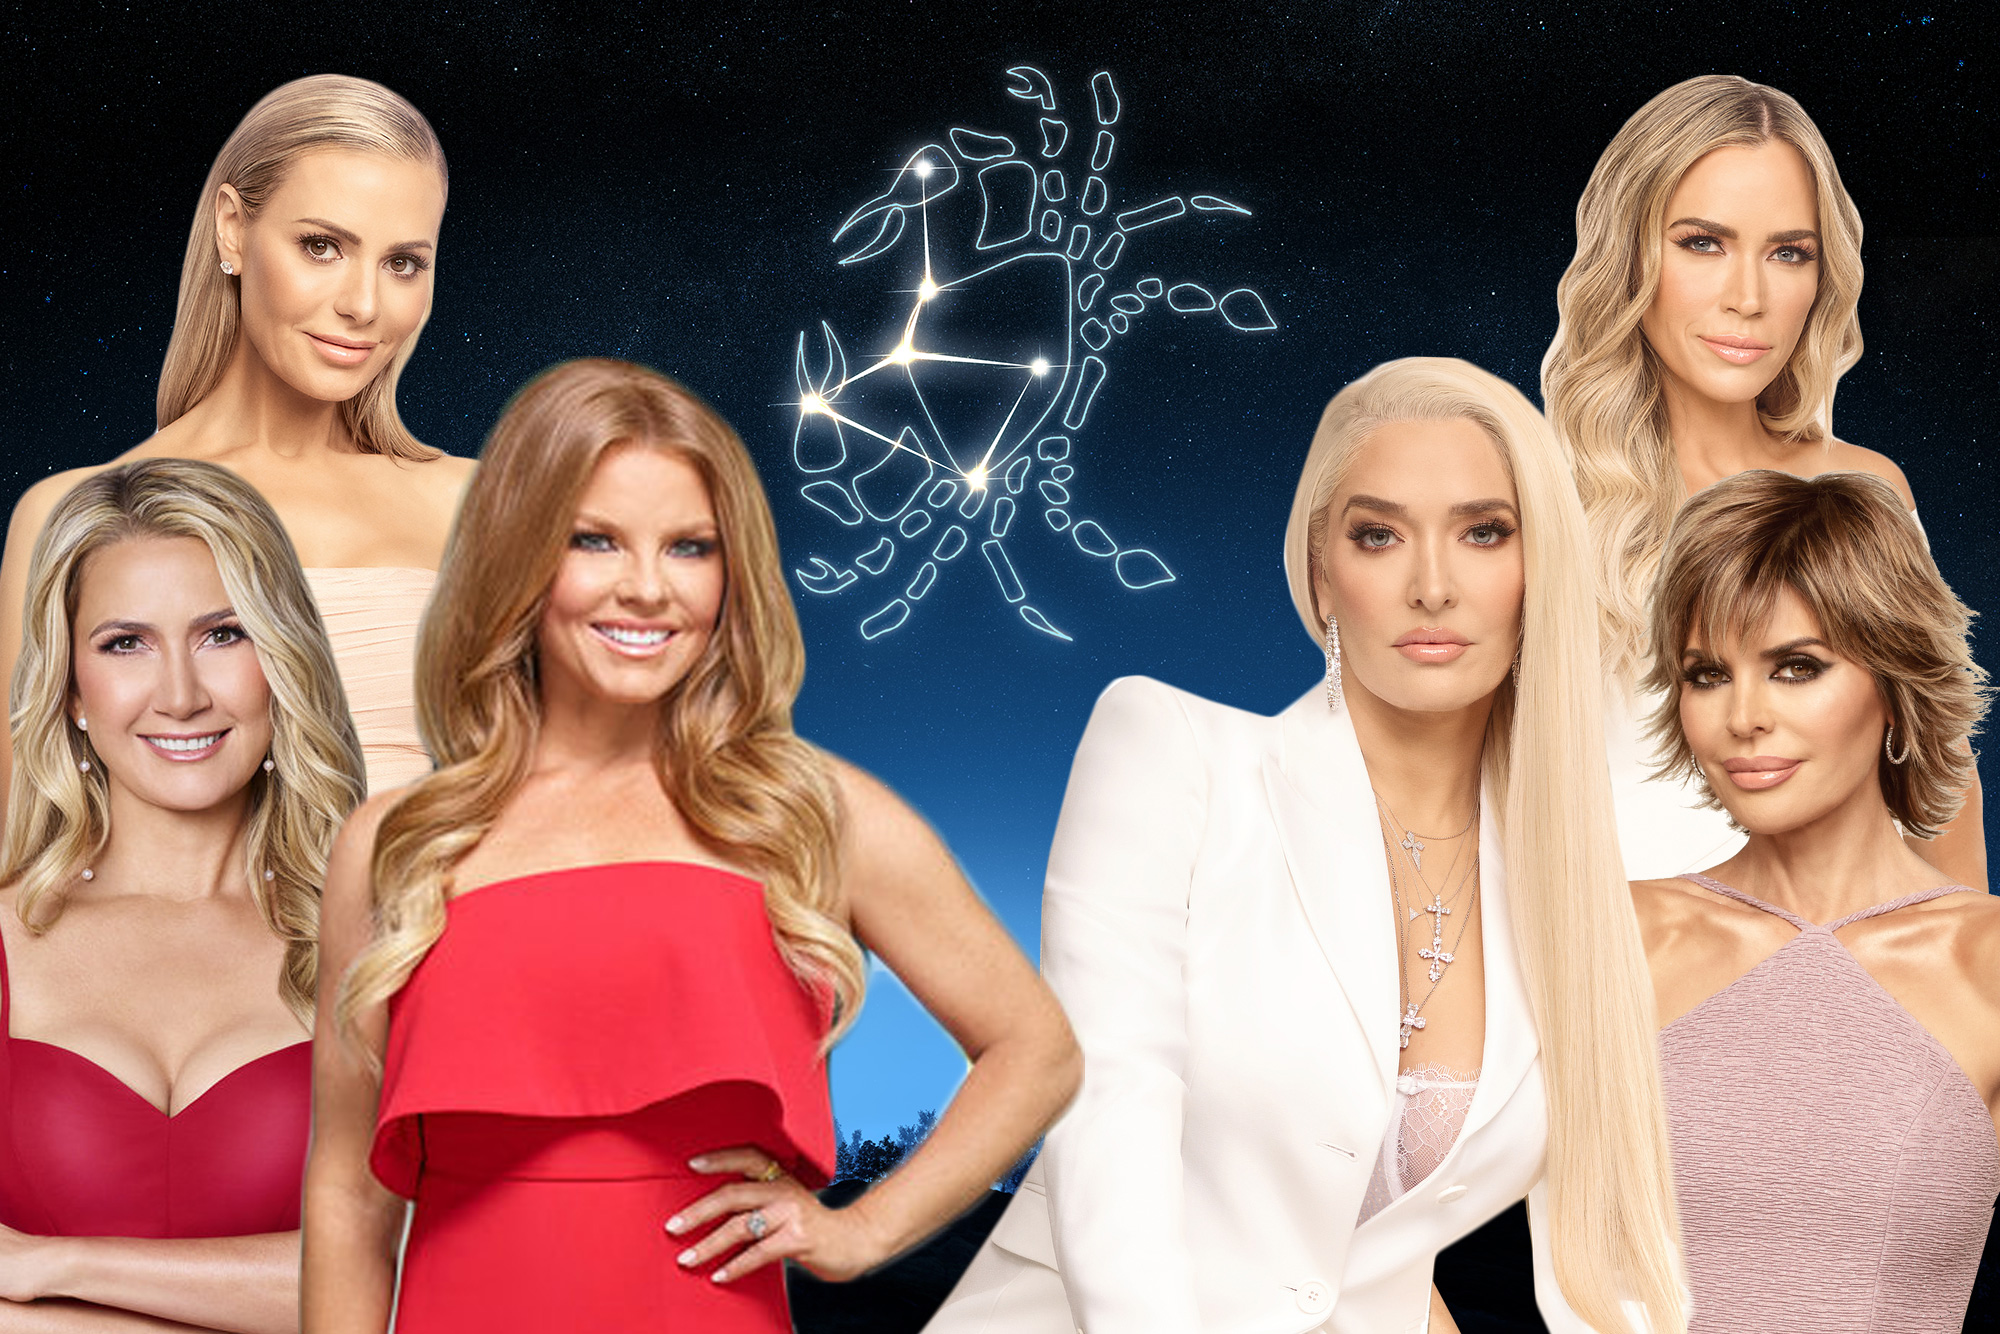 The Leading Astrological Sign Among The Real Housewives Explained